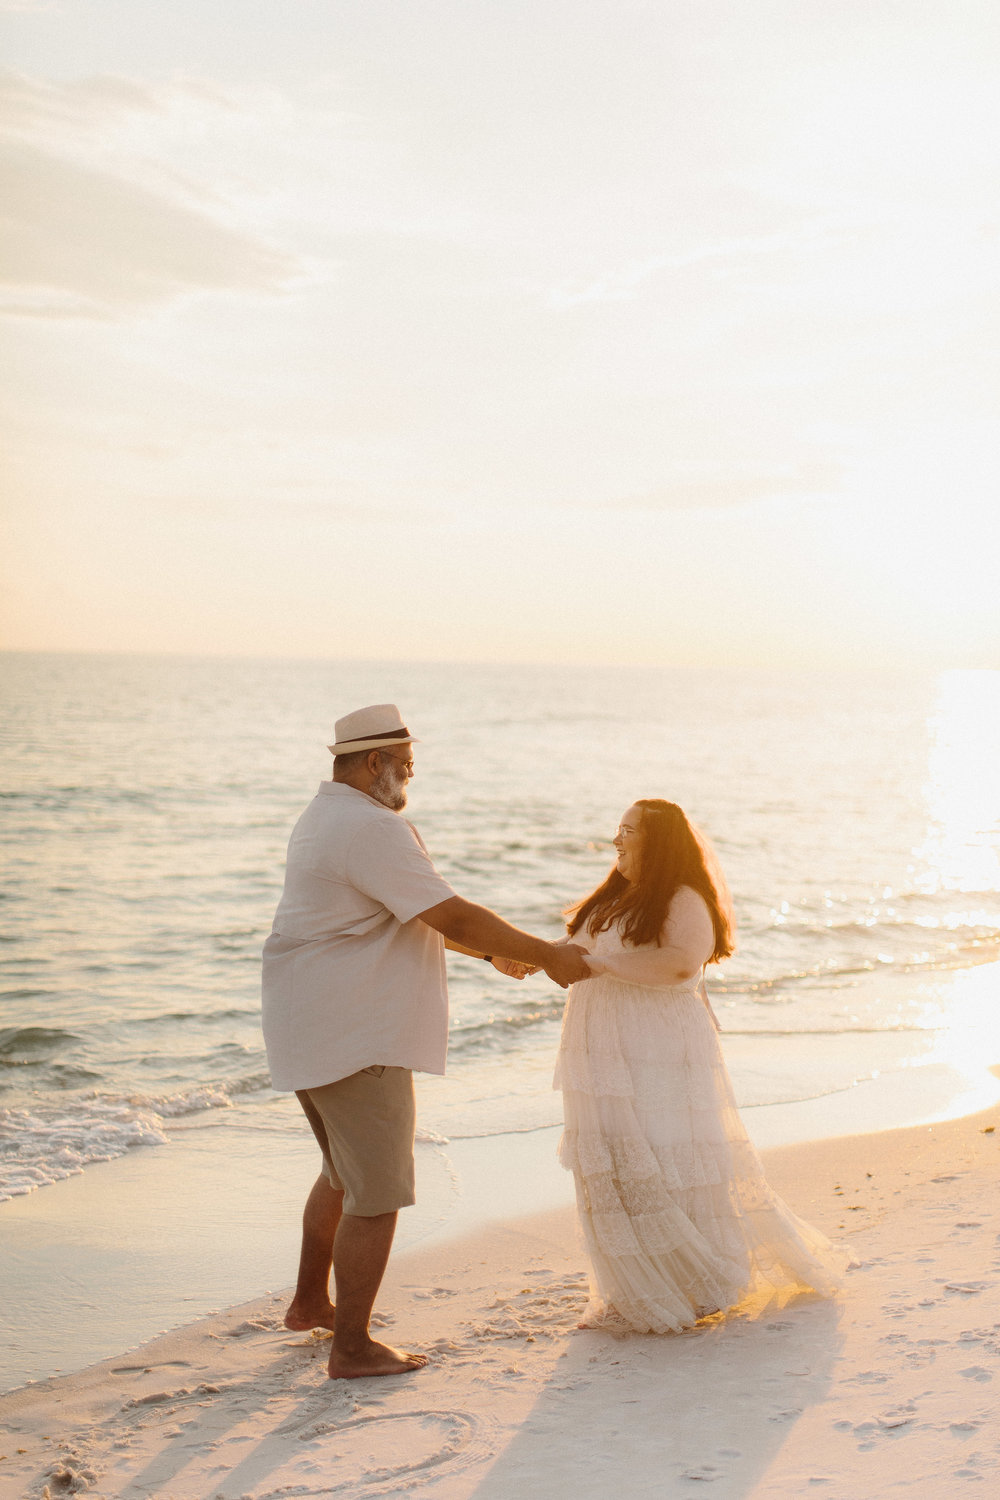 destin_sunset_beach_elopement_intimate_wedding_photographer_florida_documentary_1287.jpg